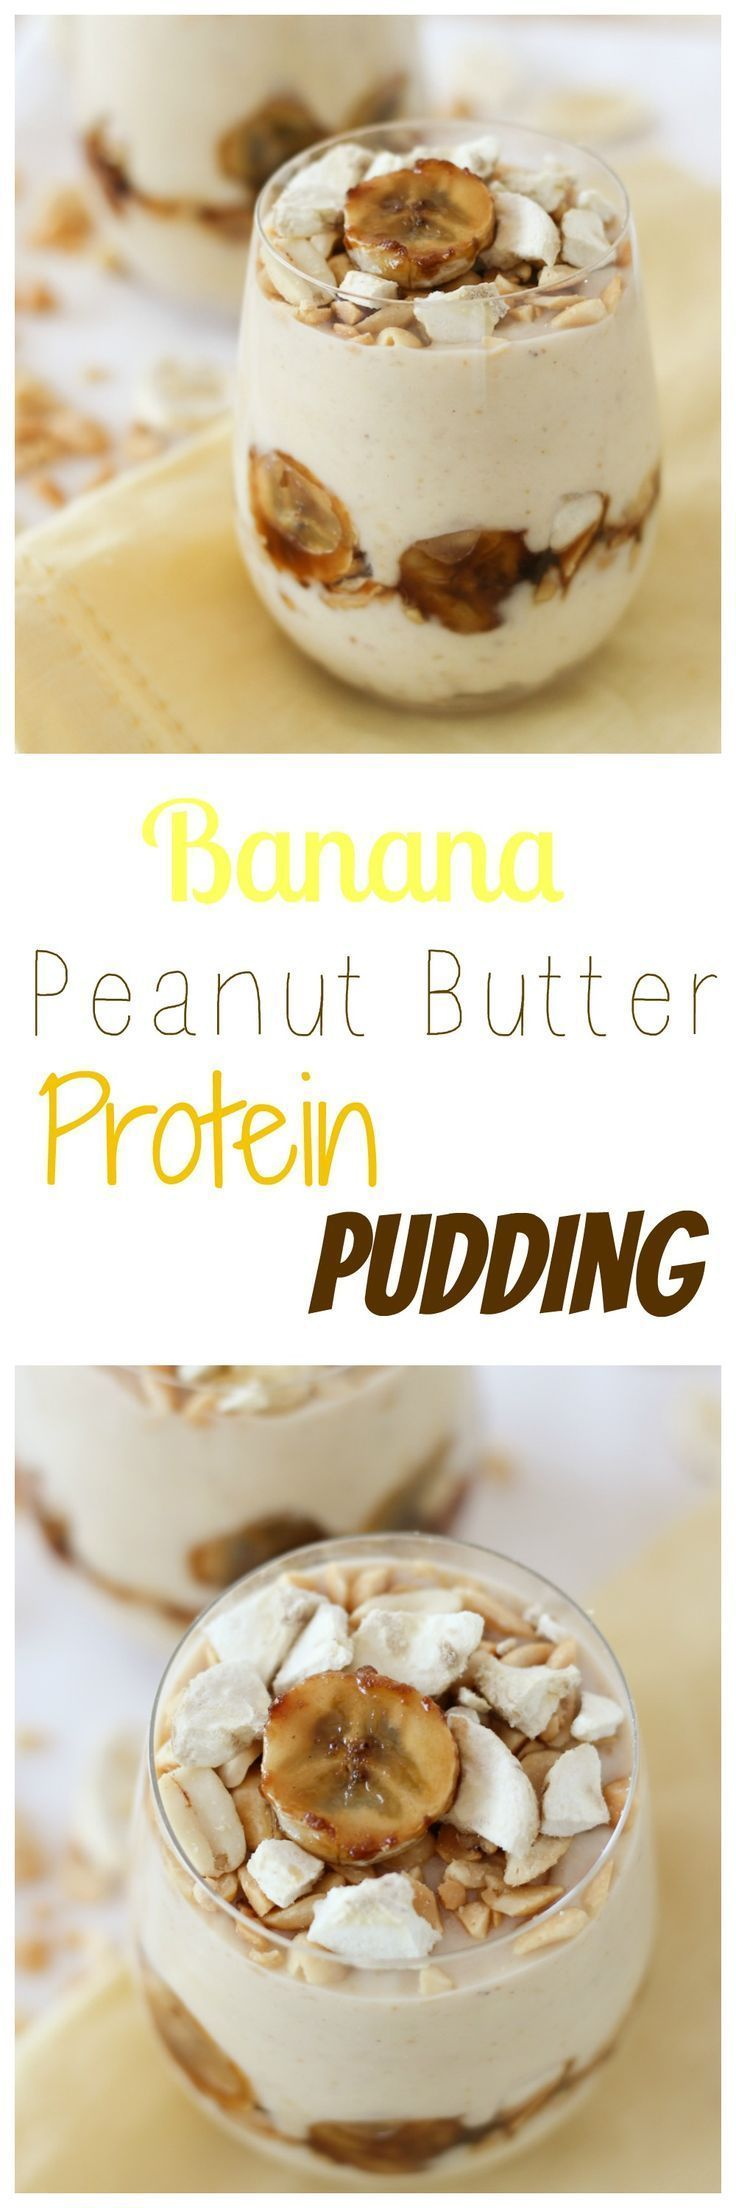 Banana Pudding clipart healthy 25+ pudding Best ideas Pinterest